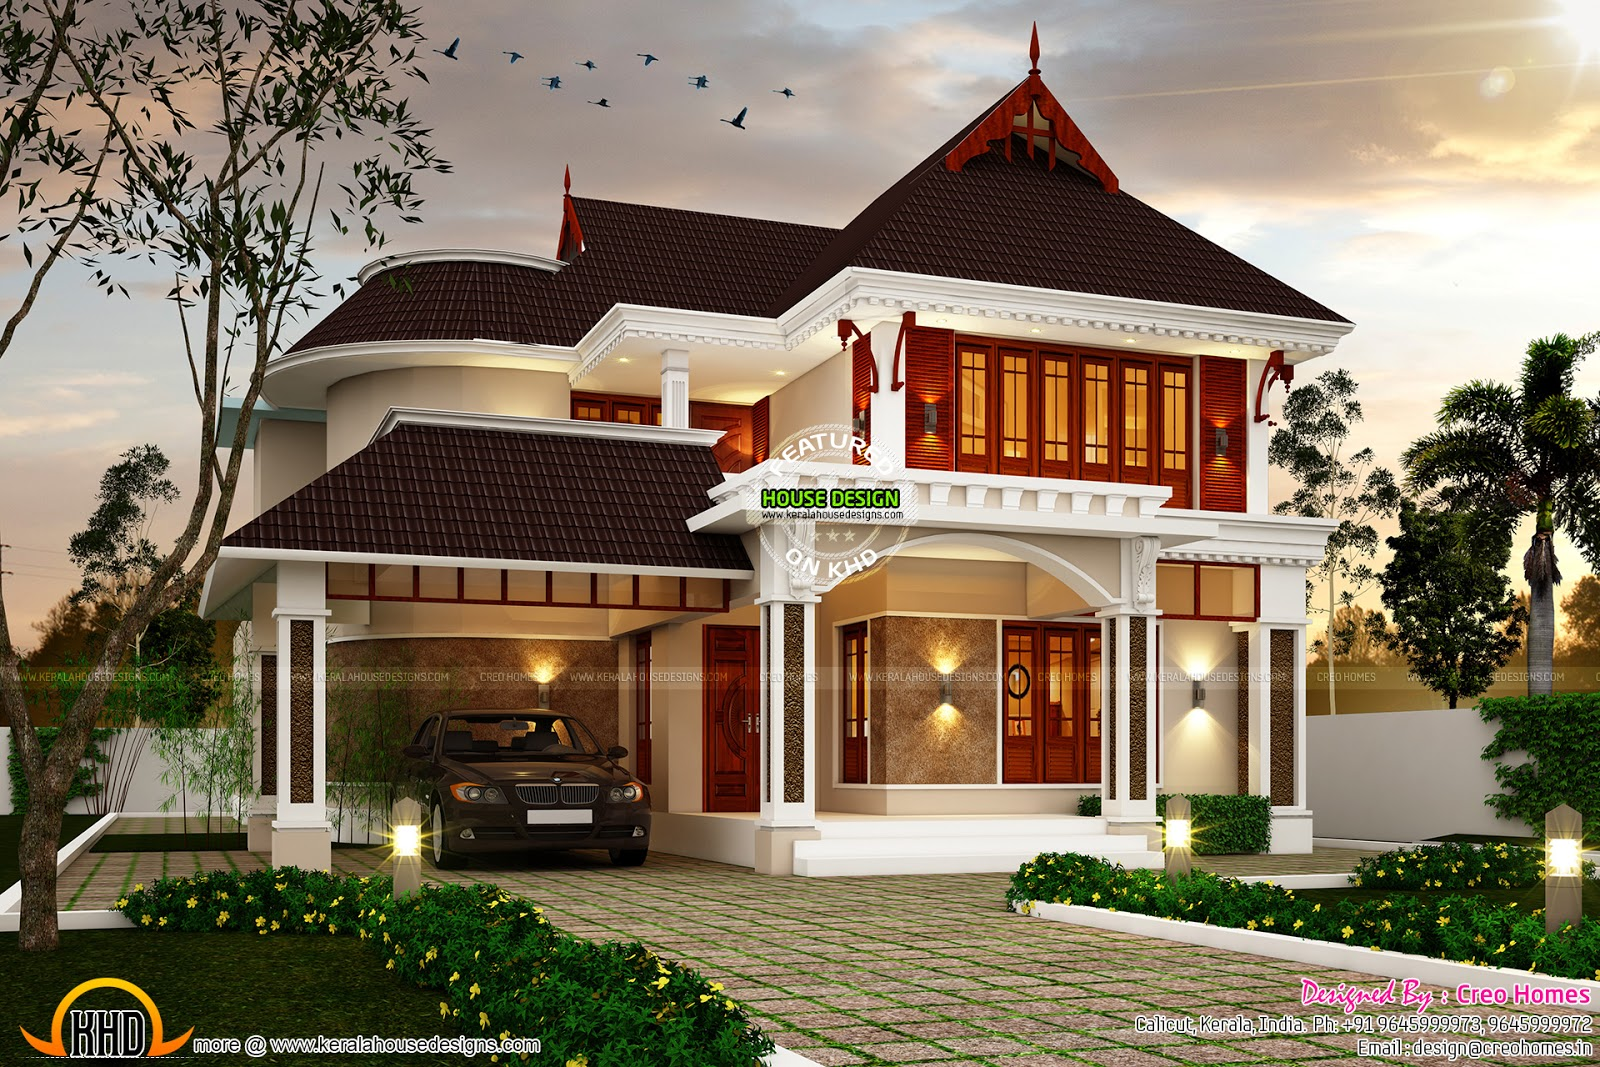 Superb dream house plan kerala home design and floor plans Home design dream house